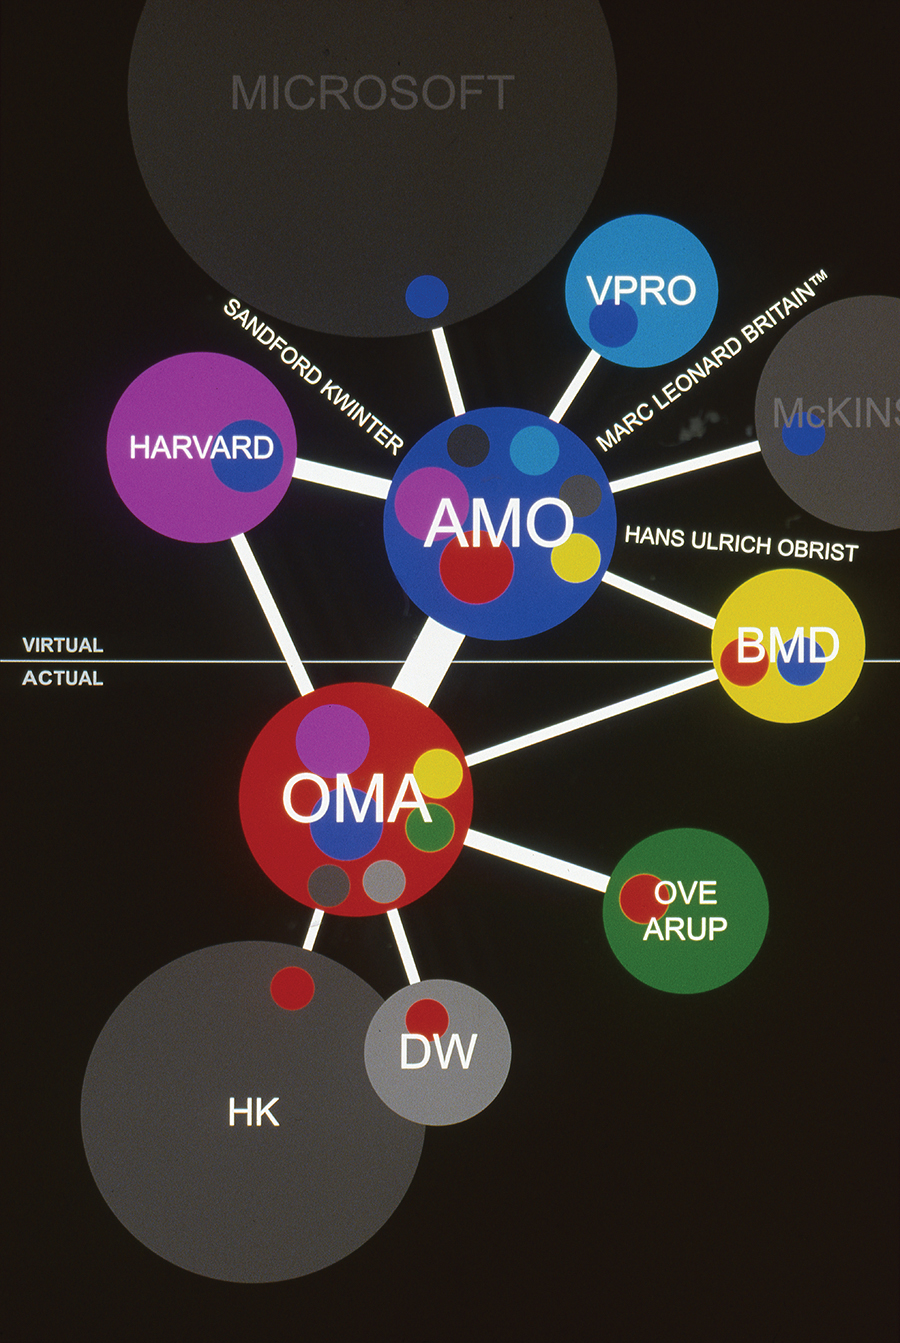 A diagram showing OMA and AMO's relationships within real and virtual spheres.